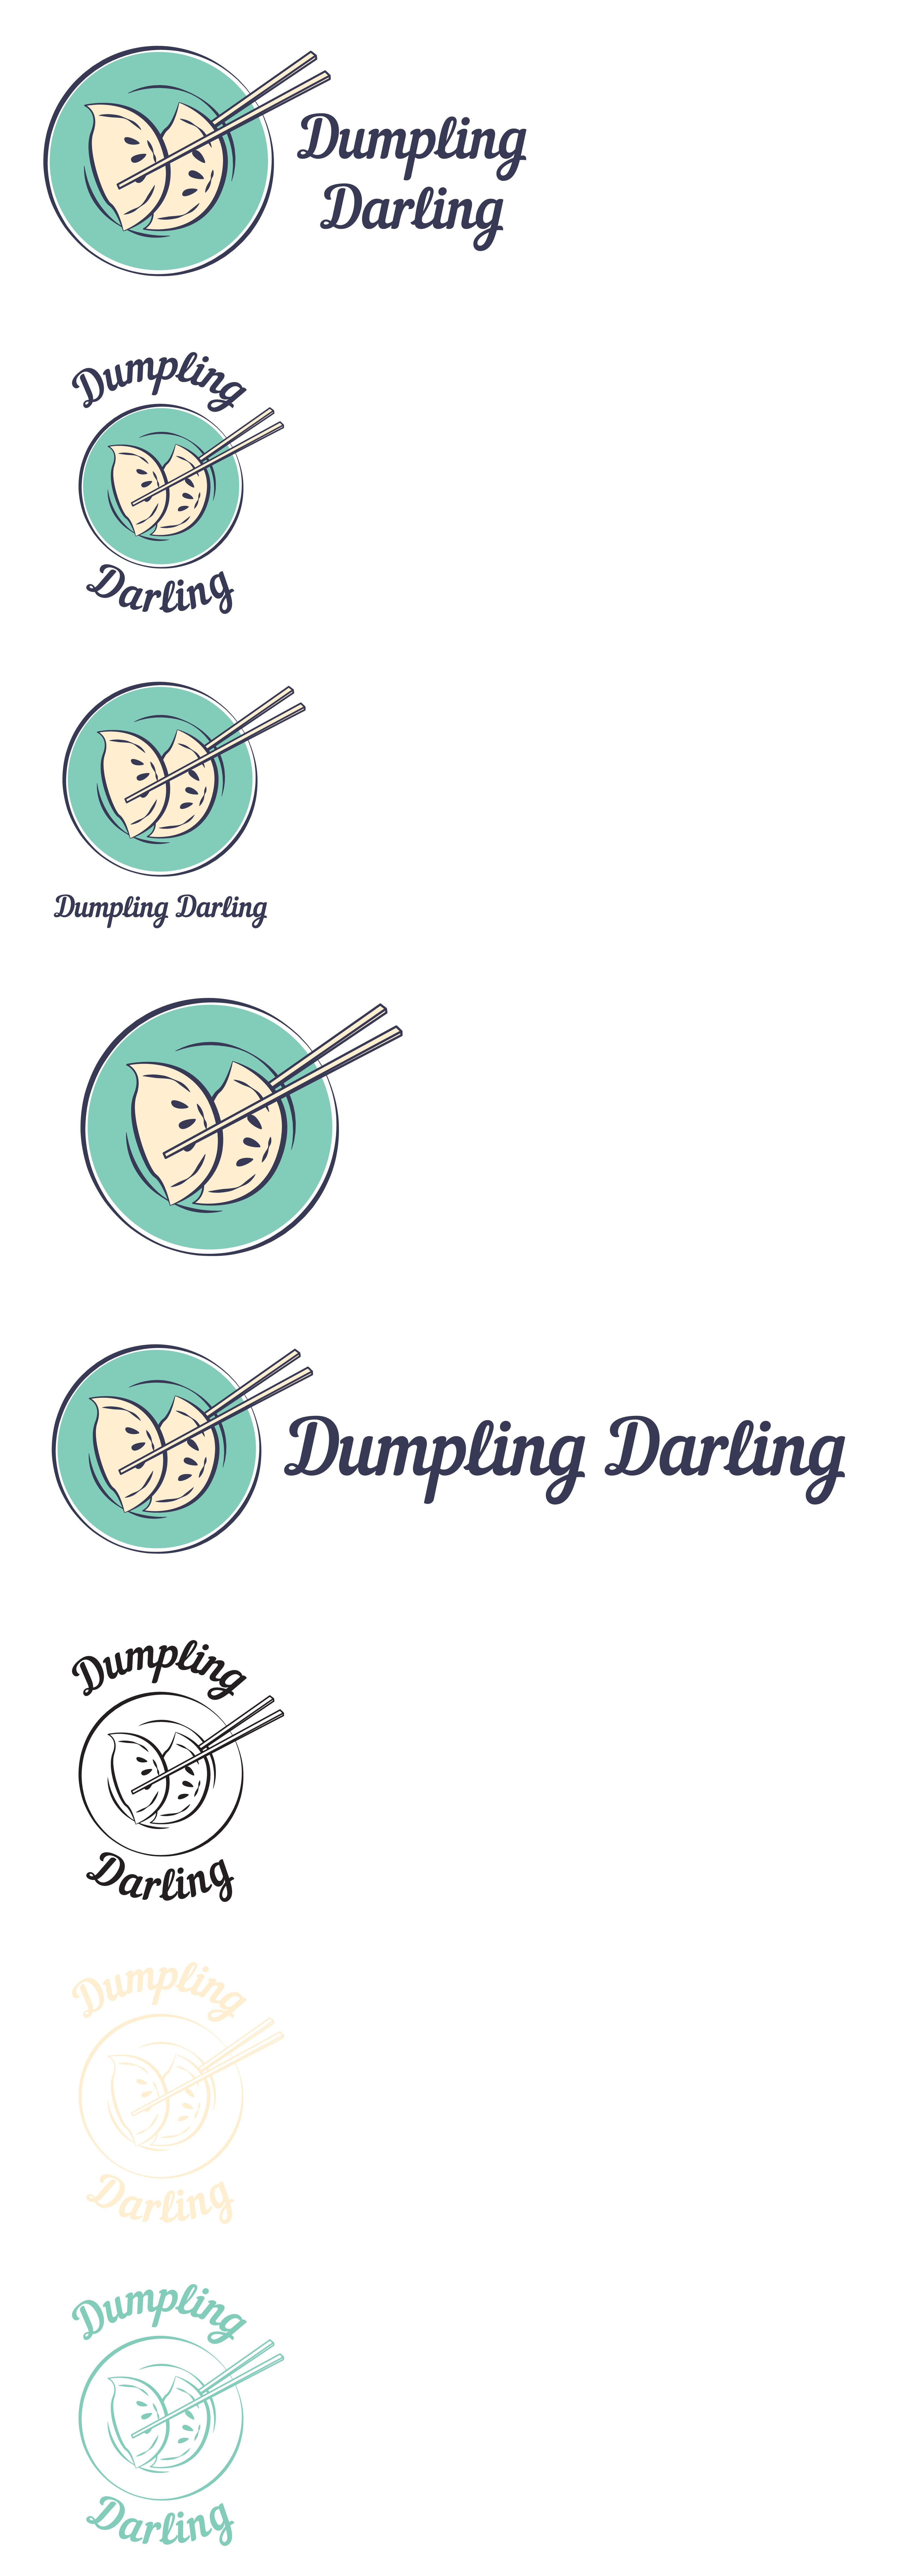 In need of an attractive logo for our new food stall business - Dumpling Darling